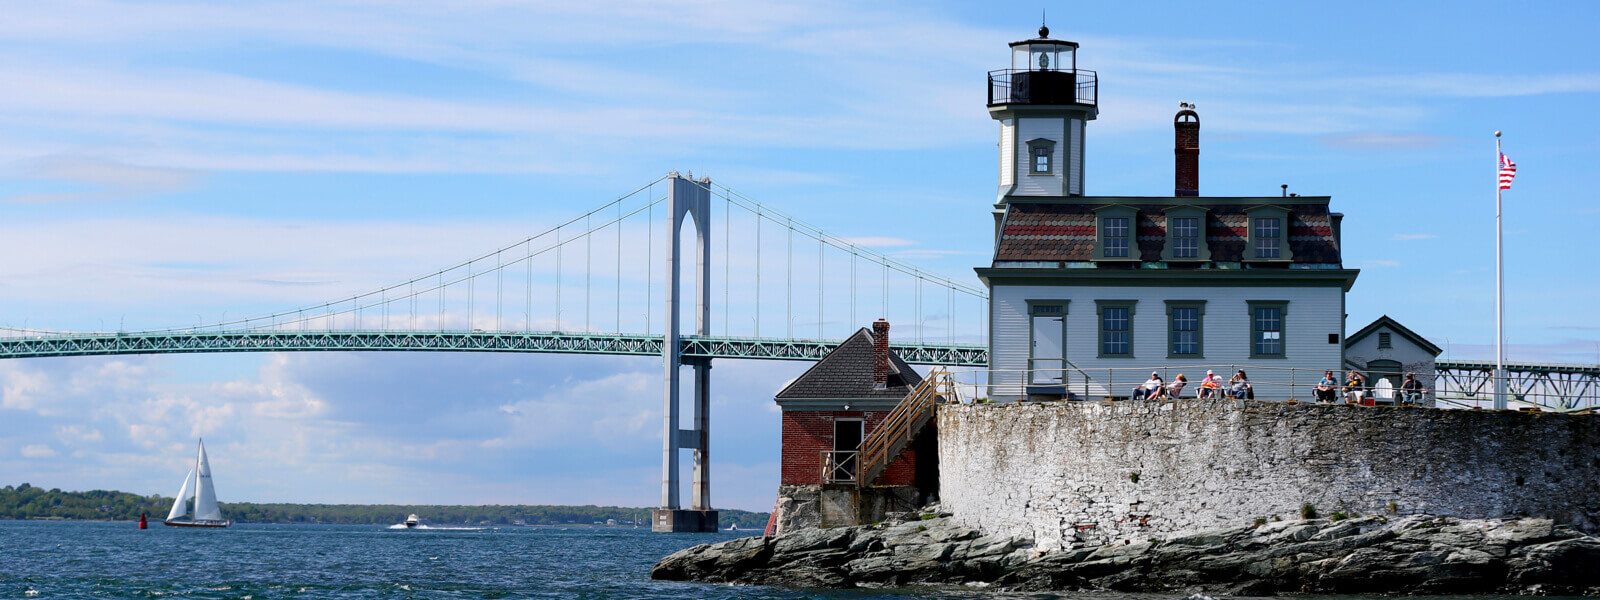 YachtLife's top Yachting Activities in Newport - Narragansett Bay